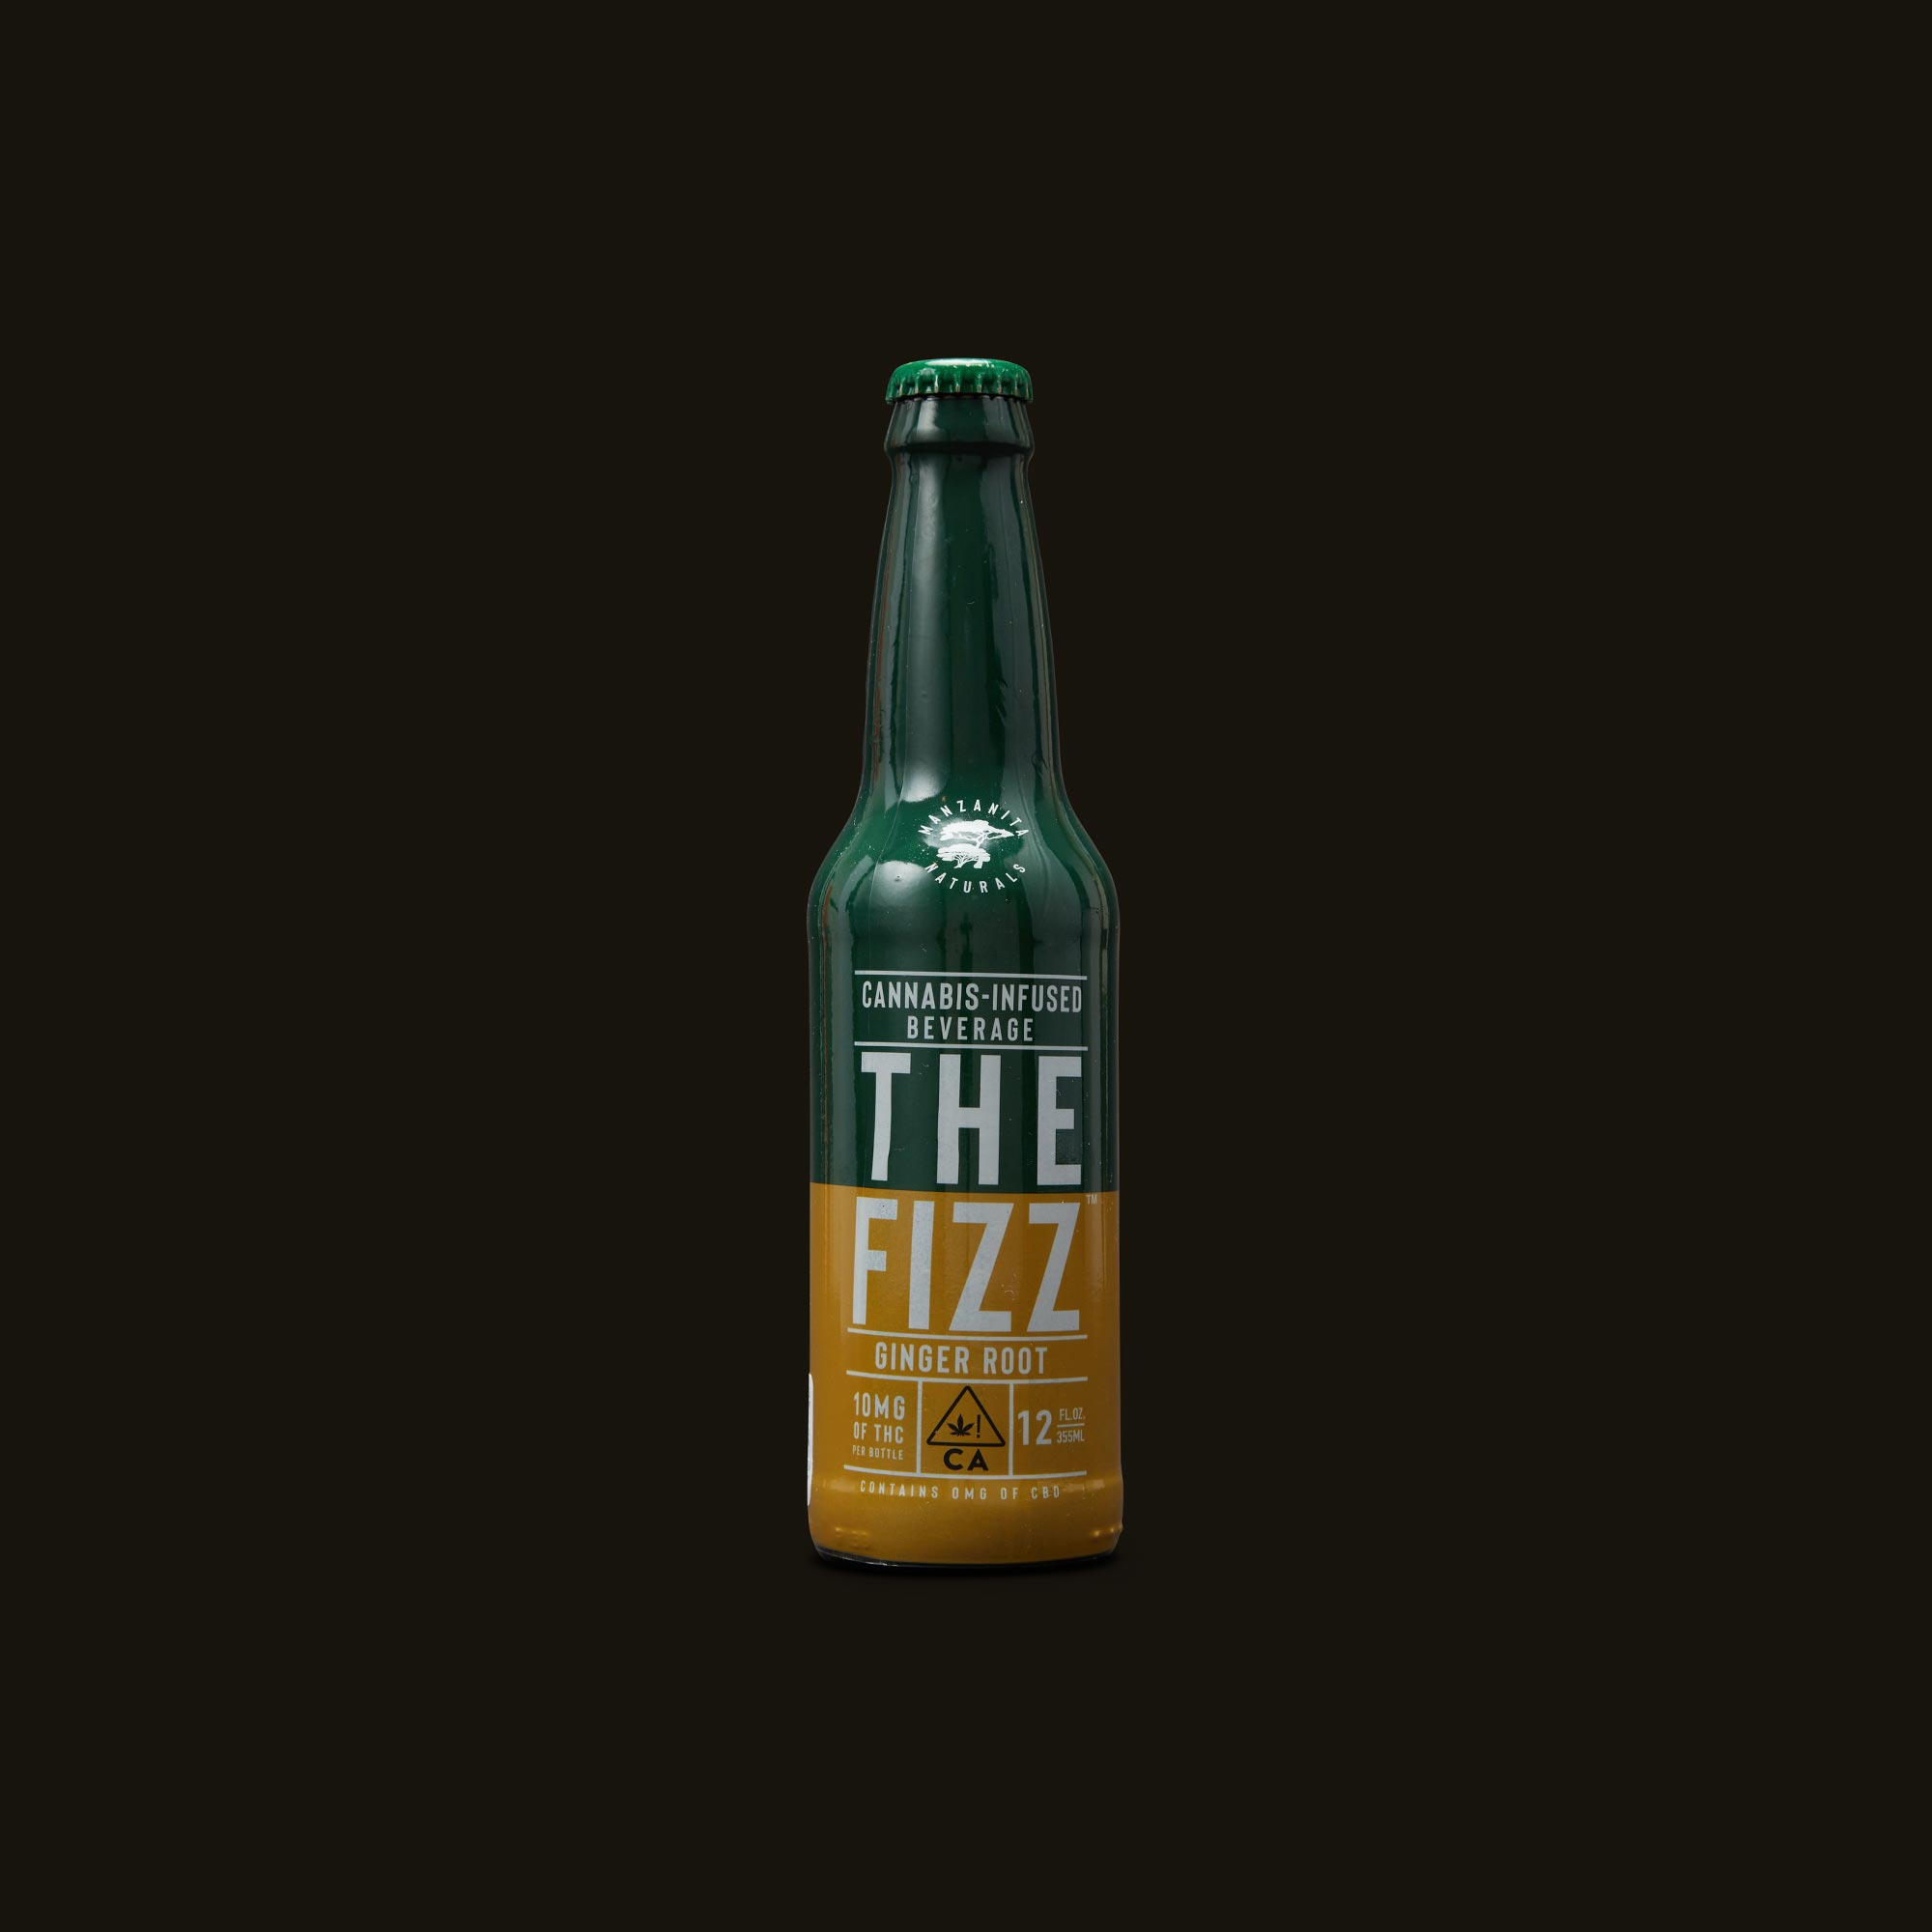 Manzanita Naturals The Fizz Ginger Root Natural Soda Front Bottle